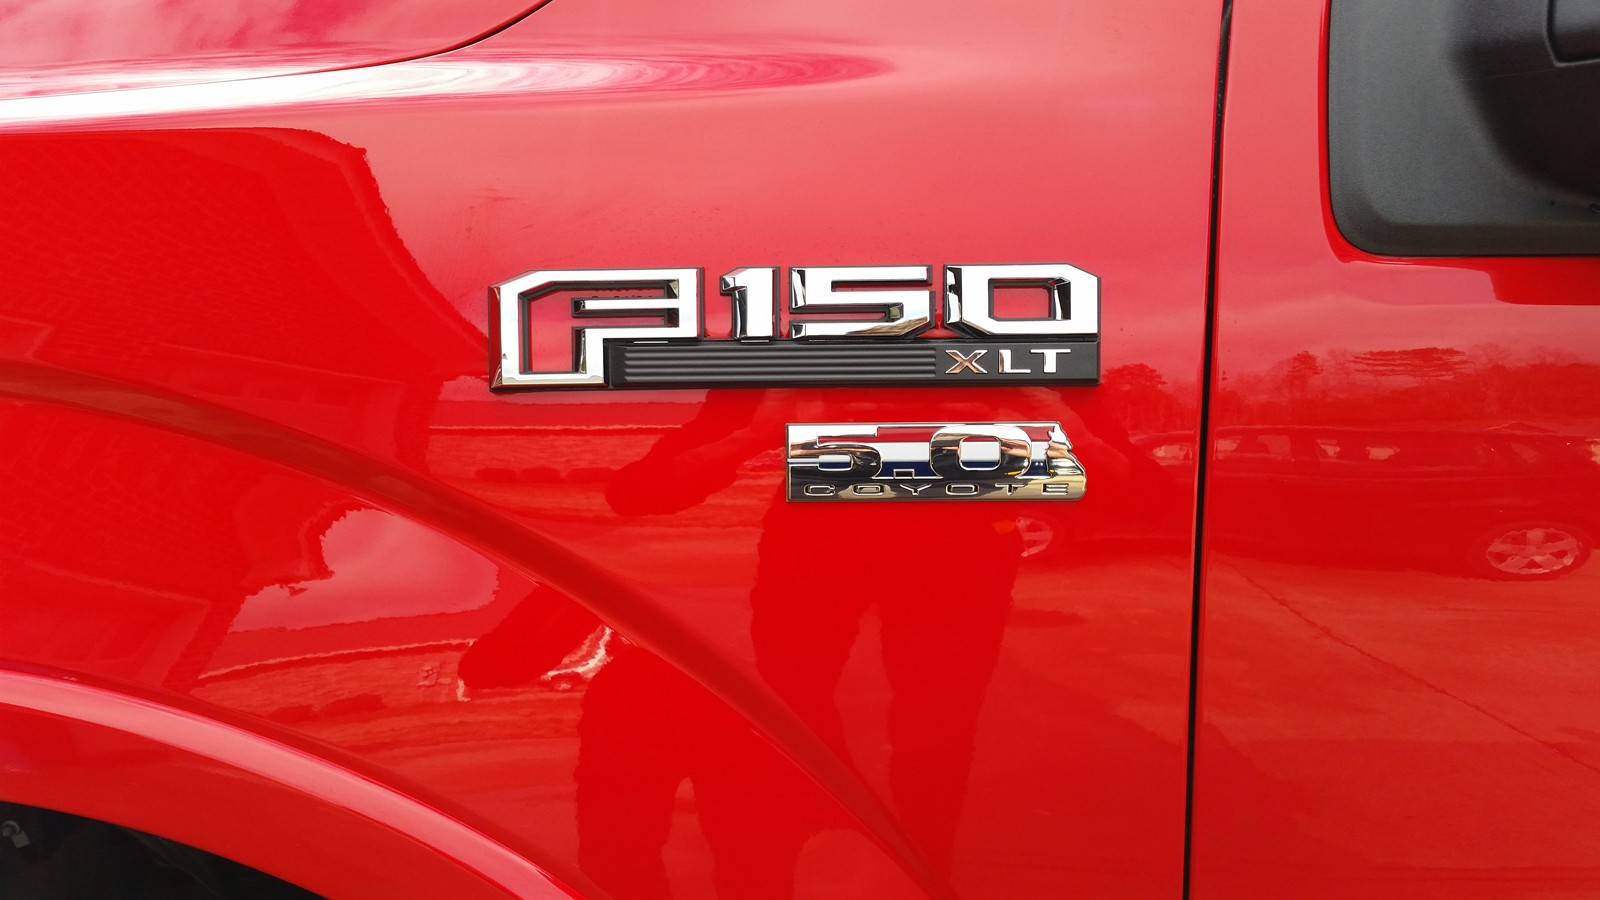 2011 2014 Mustang Gt Ford F 150 Boss 302 5 0 Coyote Chrome